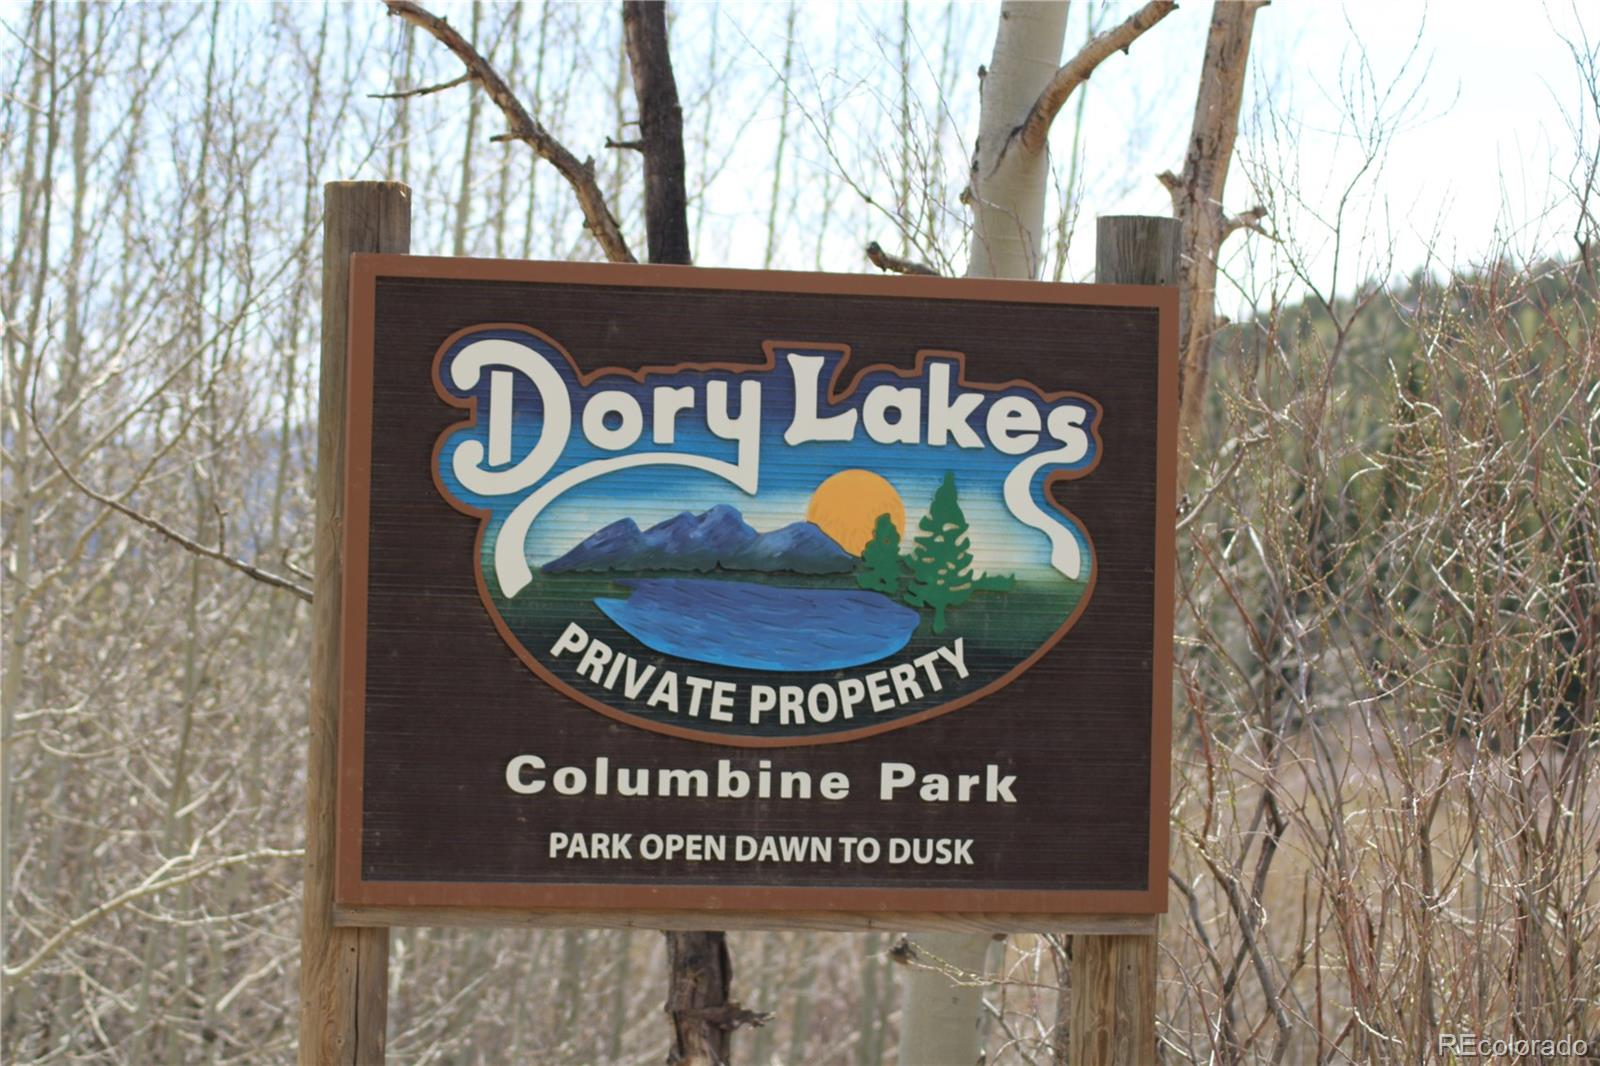 Residents may use Columbine Park for private events